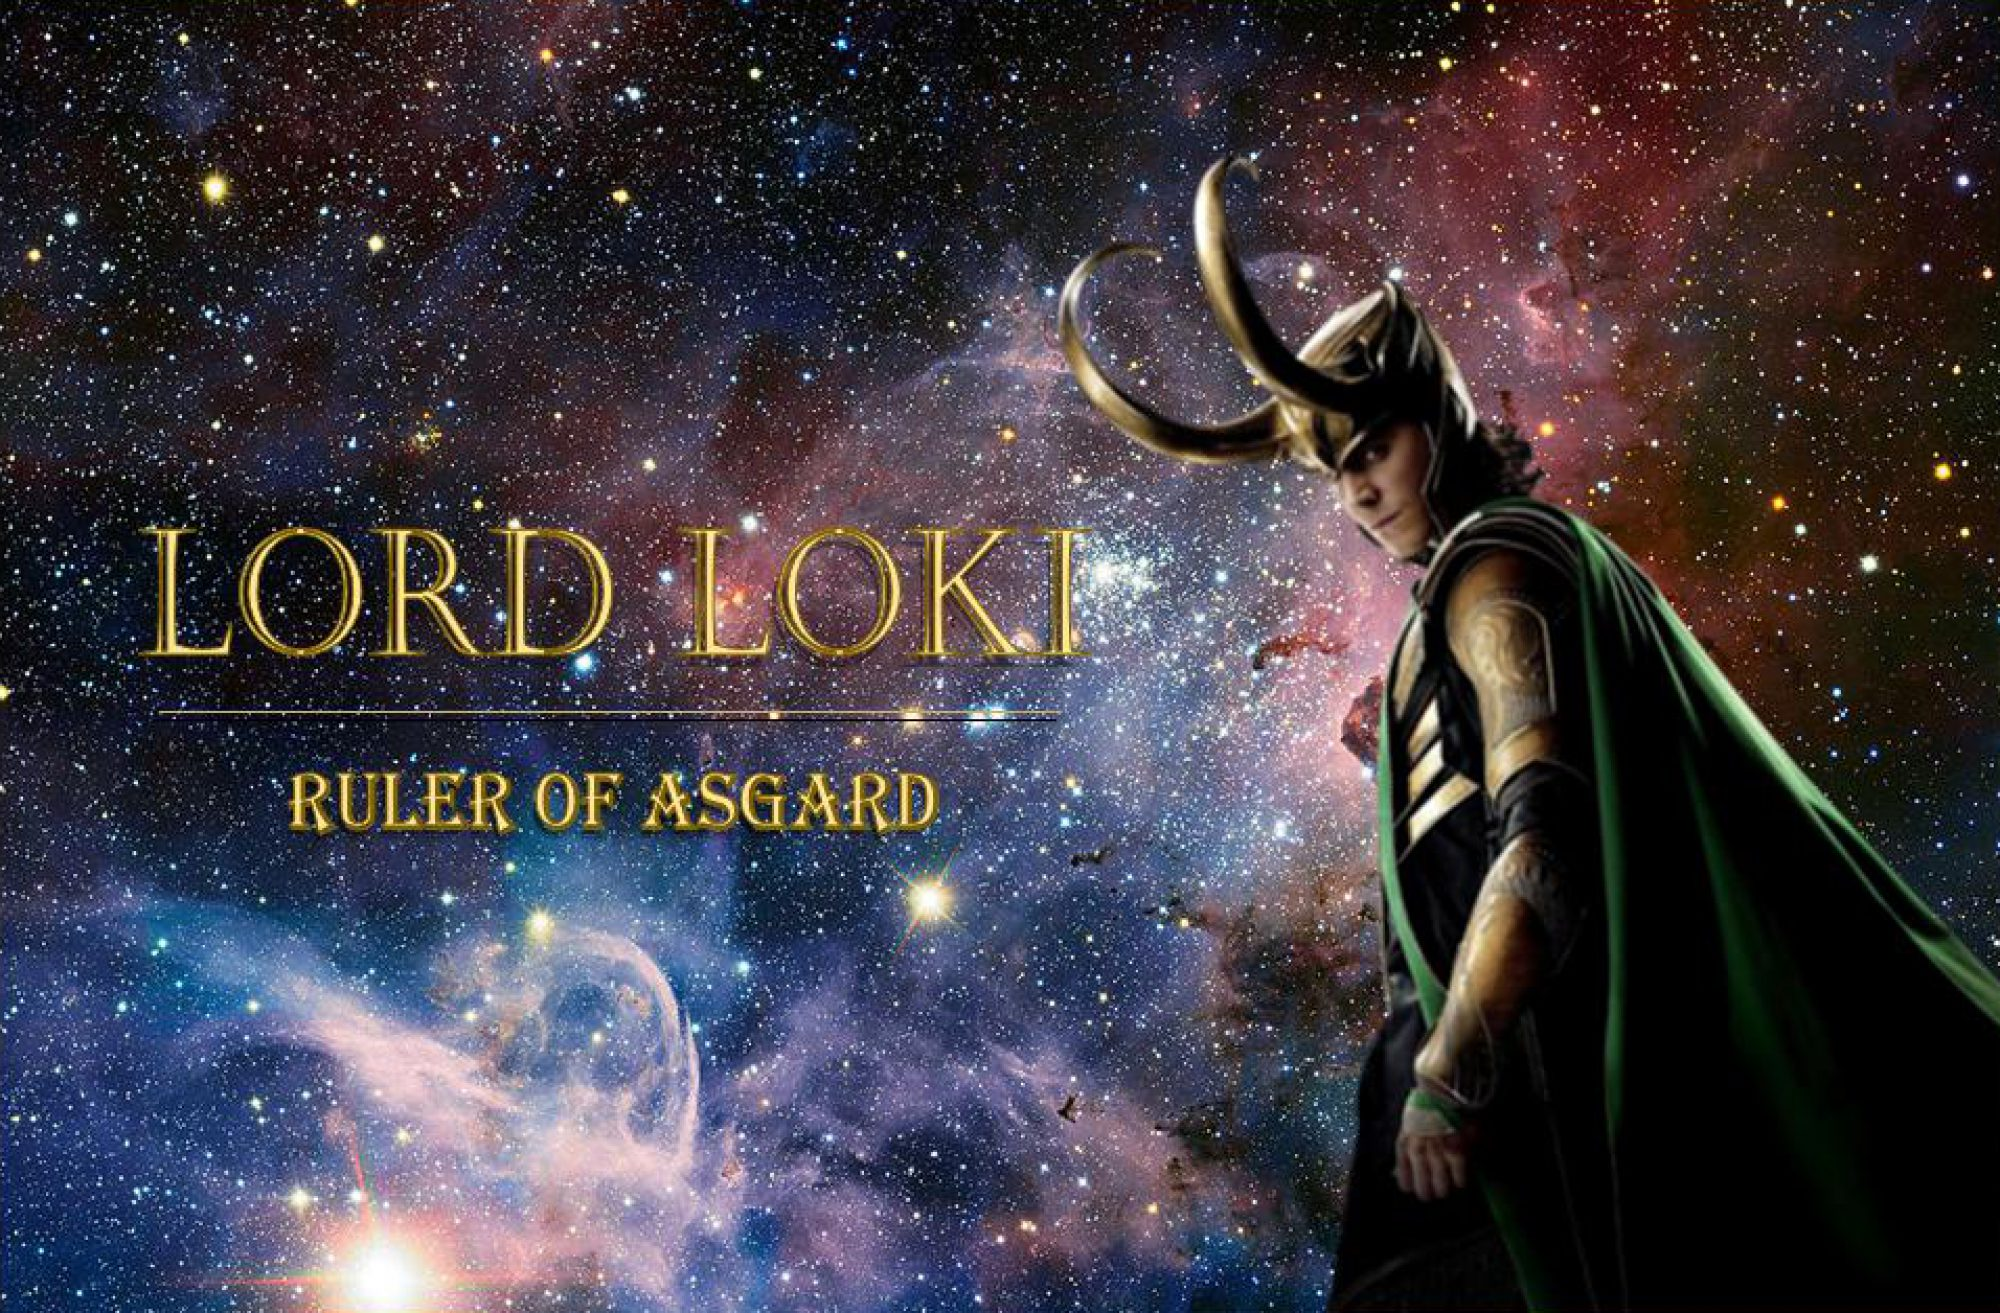 Lord Loki: Ruler of Asgard